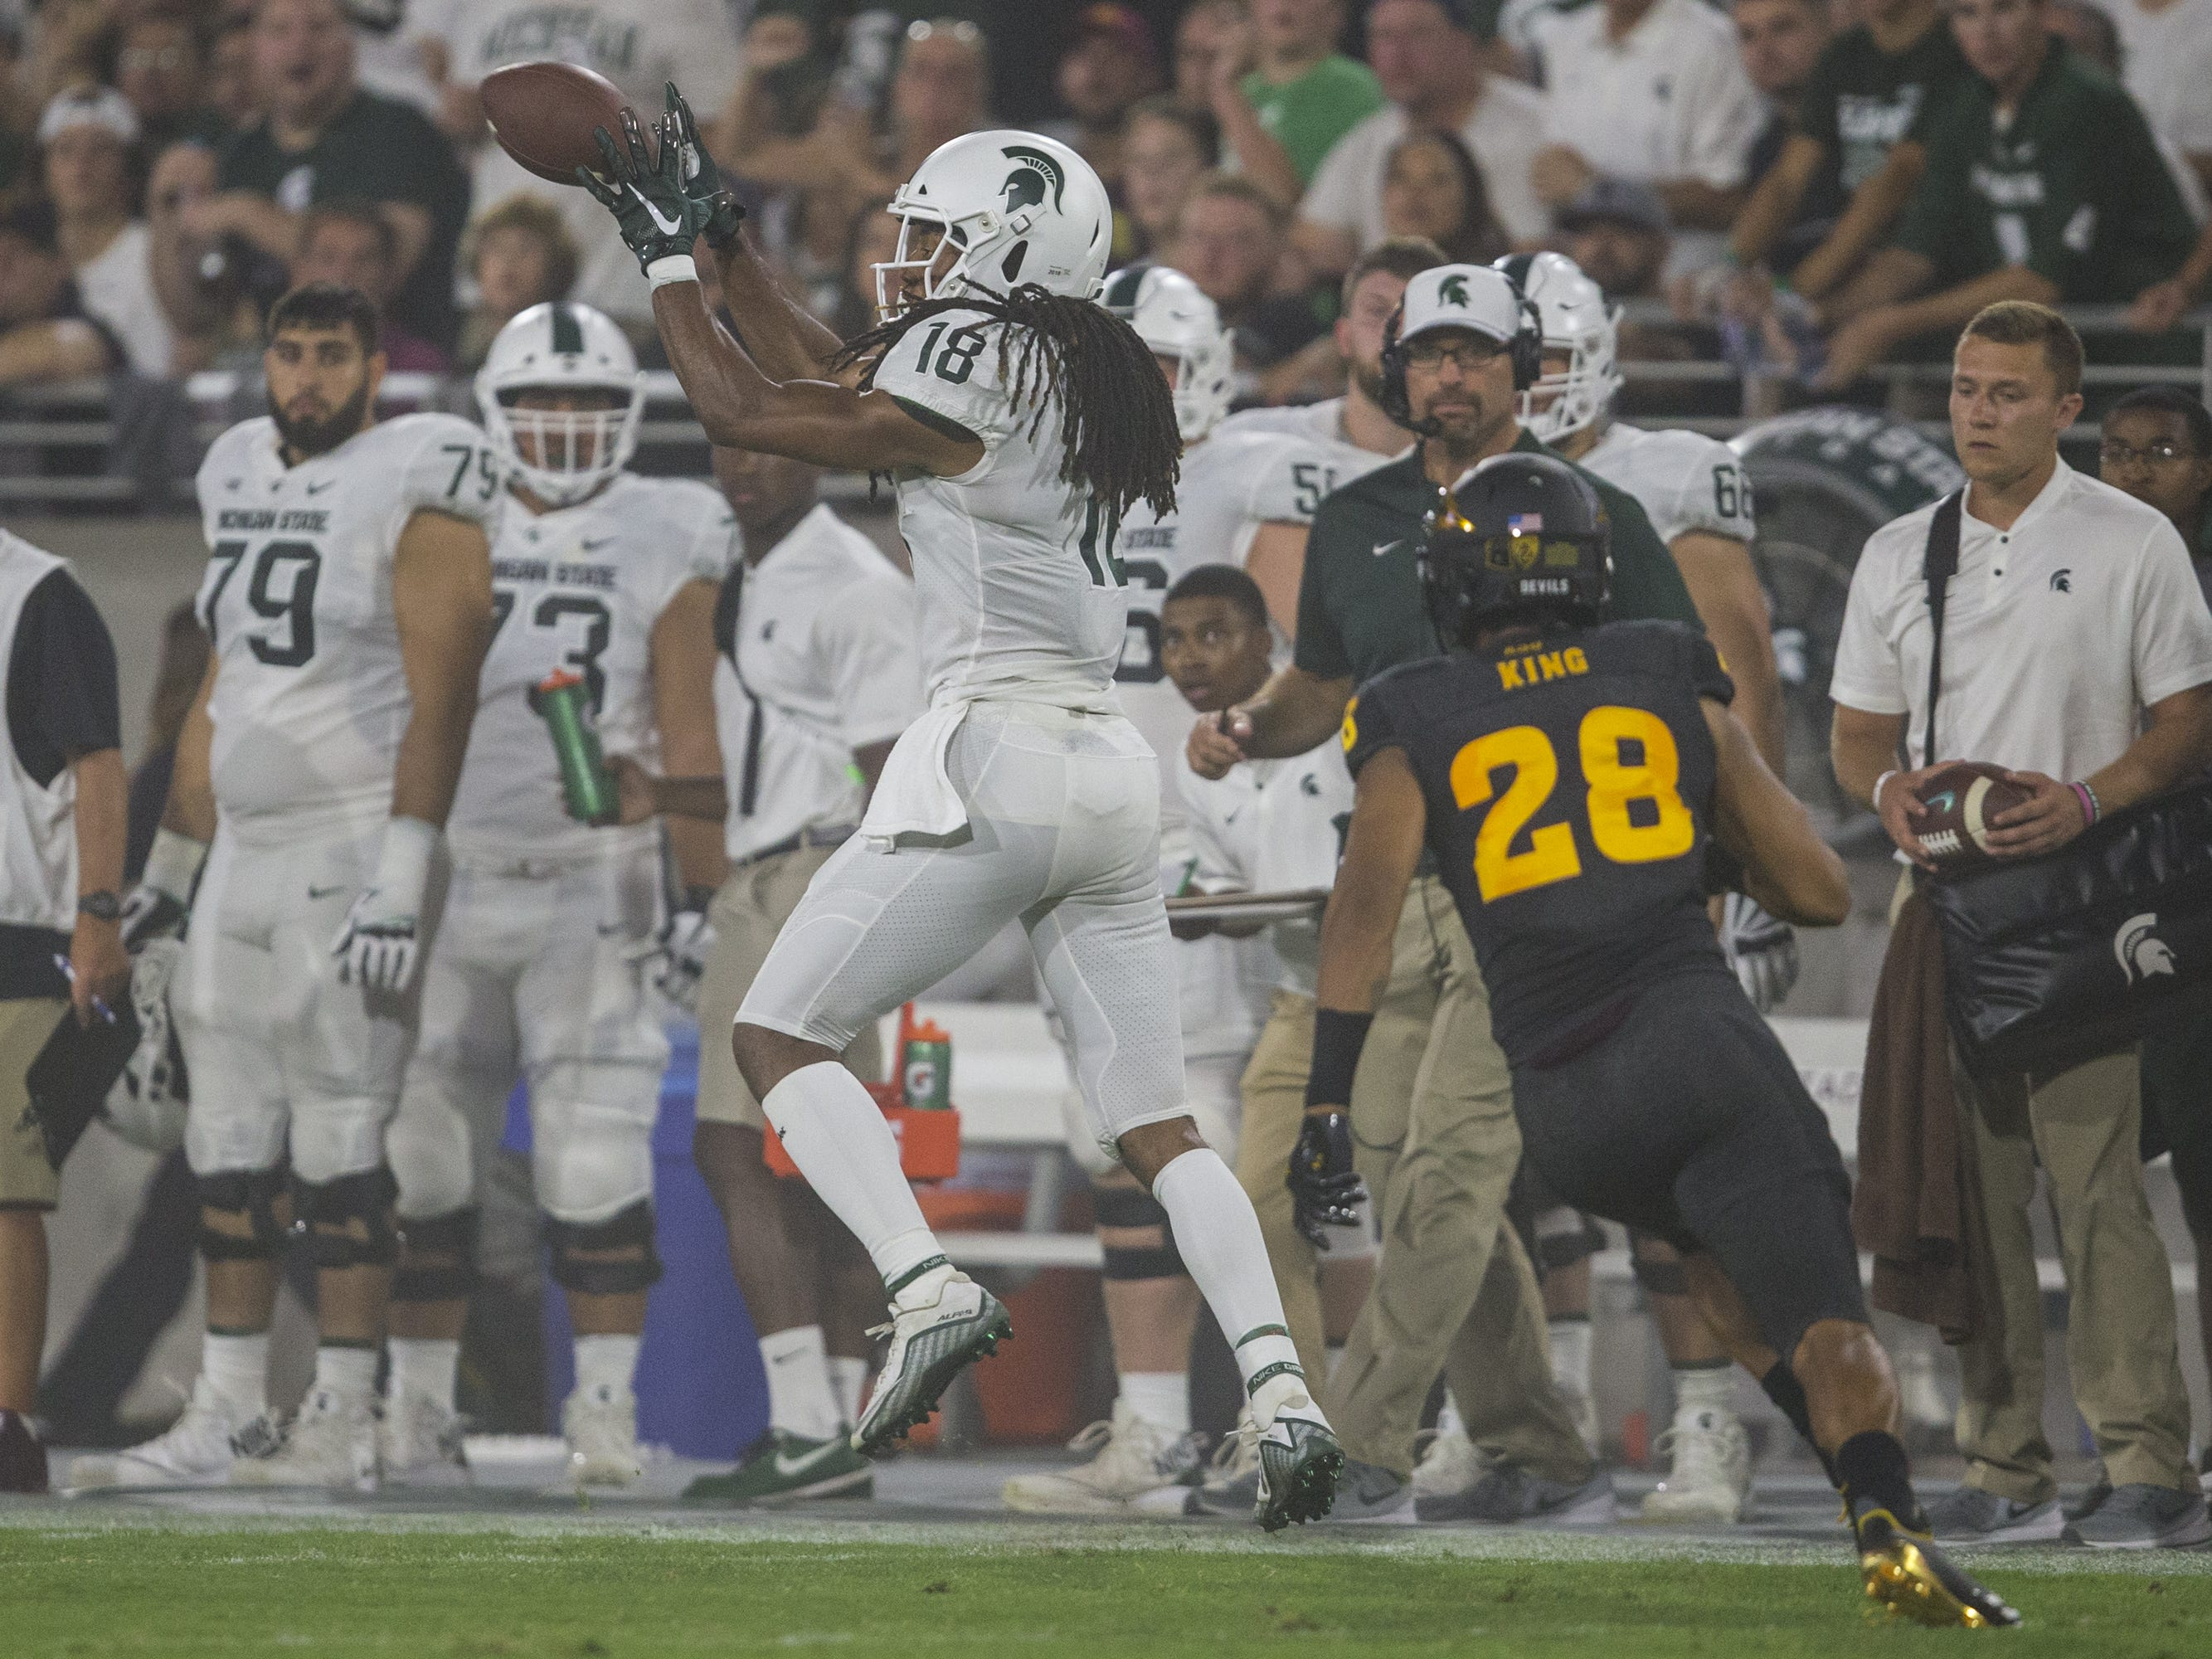 Michigan State's Felton Davis III makes a catch against Arizona State in the 2nd quarter on Saturday, Sept. 8, 2018, at Sun Devil Stadium in Tempe, Ariz.